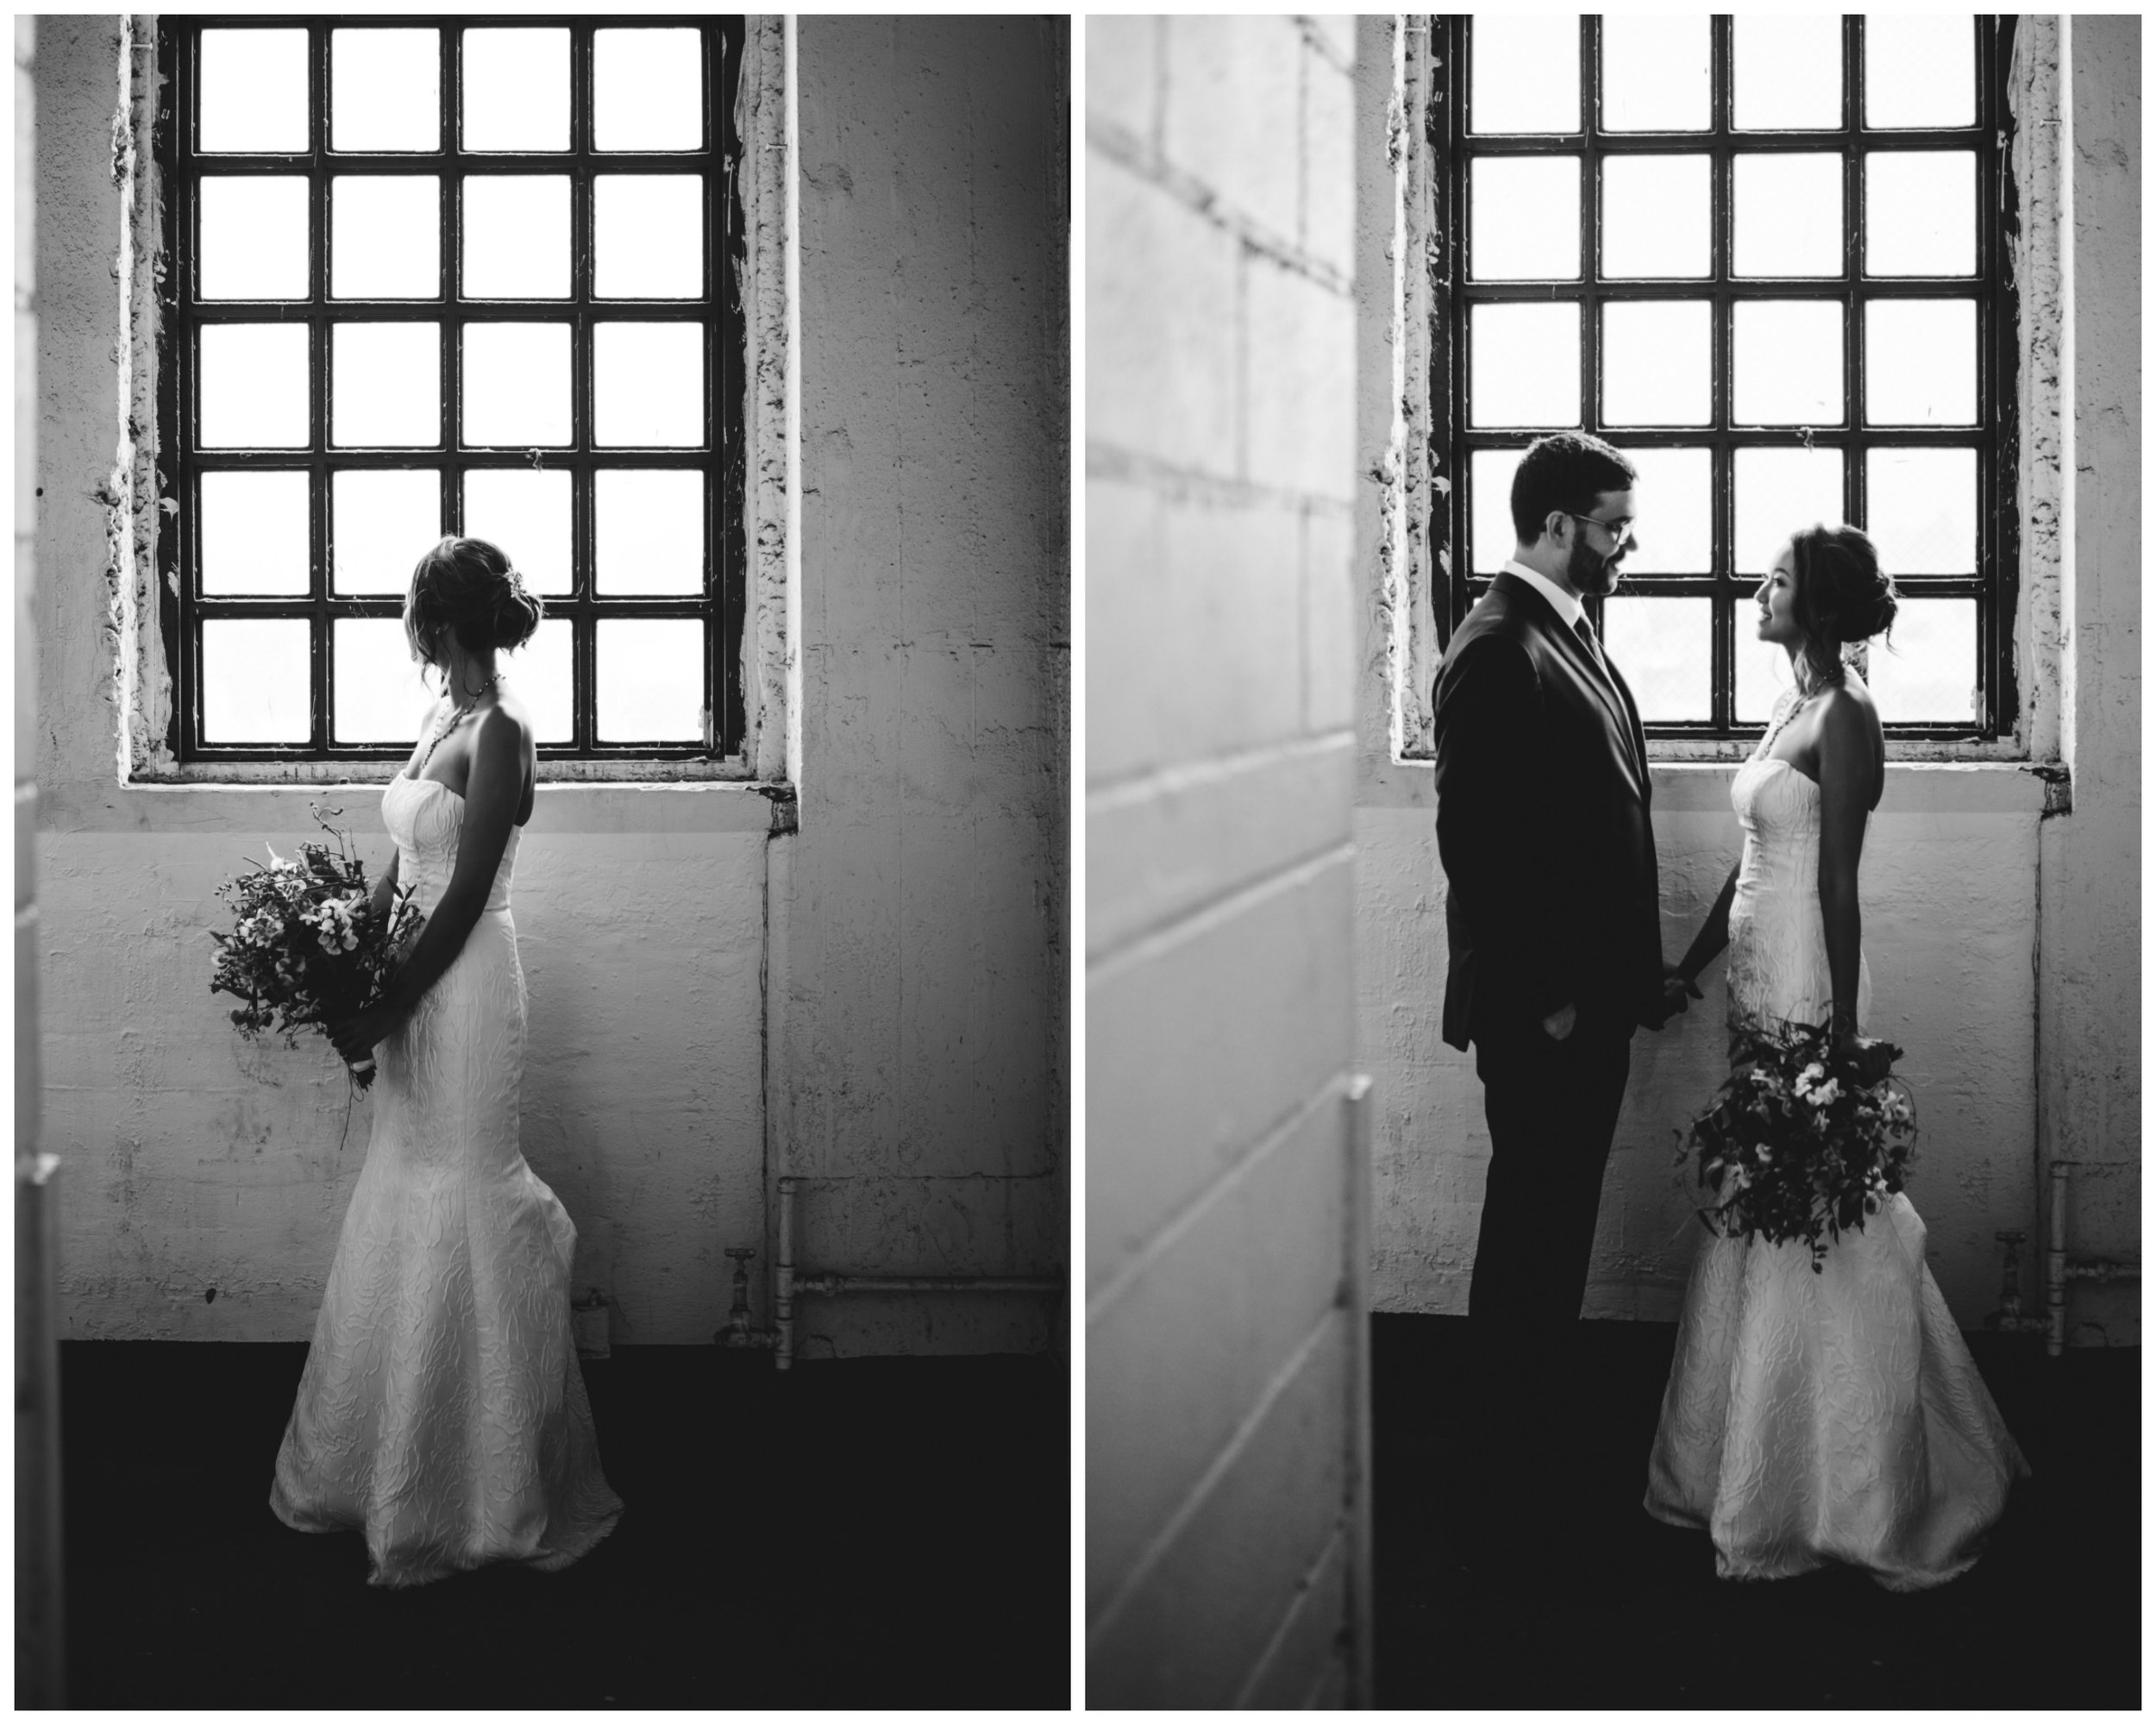 BROOKLYN GRANGE WEDDING - NYC BEST INTIMATE WEDDING PHOTOGRAPHER - CHI-CHI ARI 8.jpg